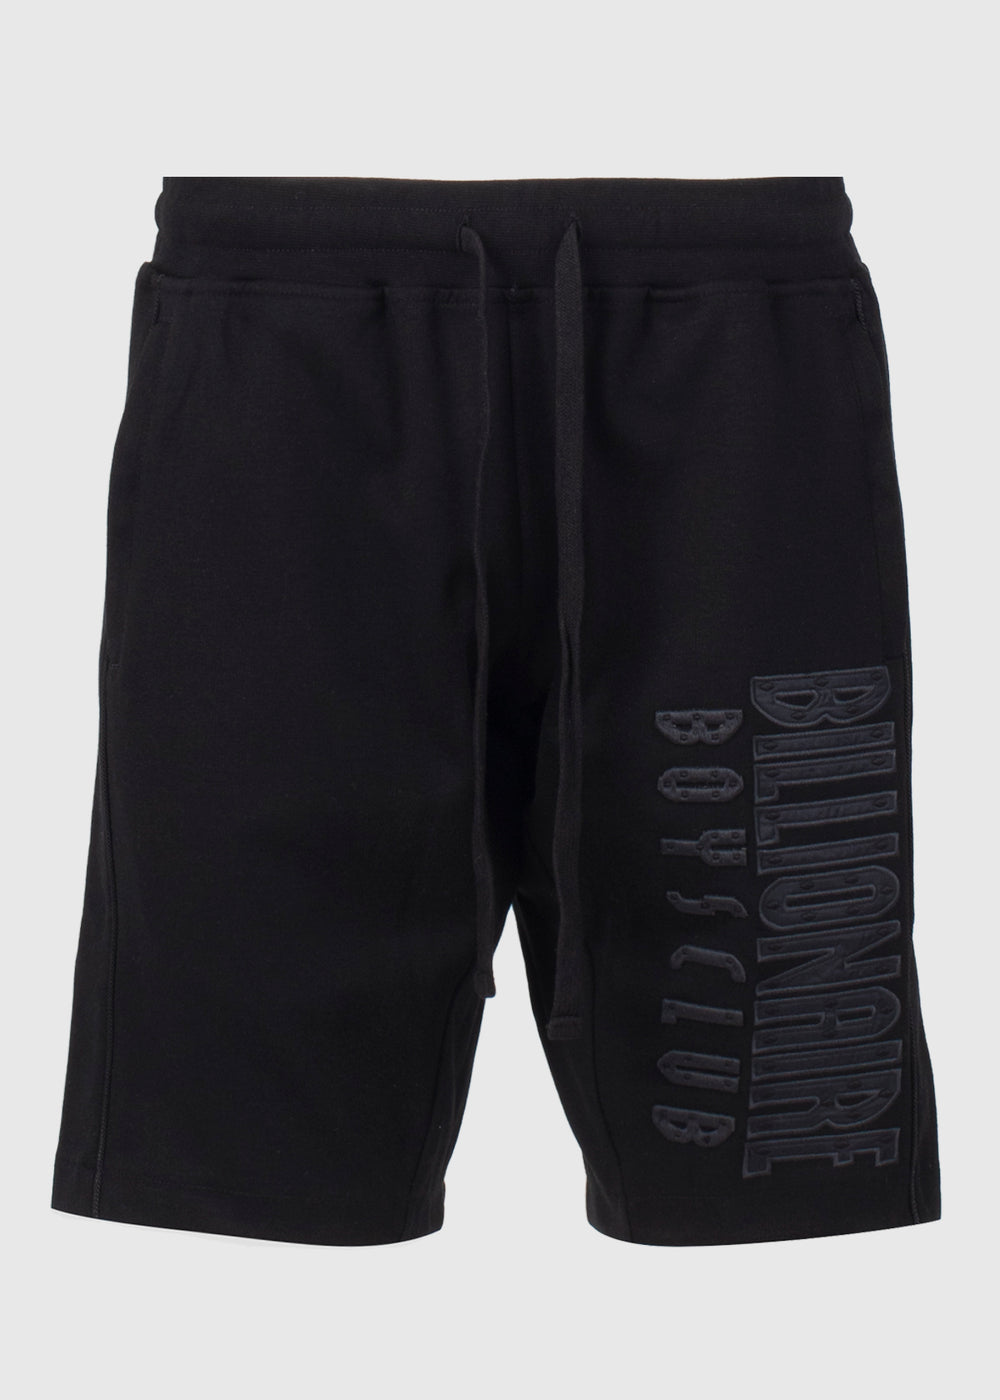 billionaire-boys-club-straight-font-shorts-891-6100-blk-blk-1